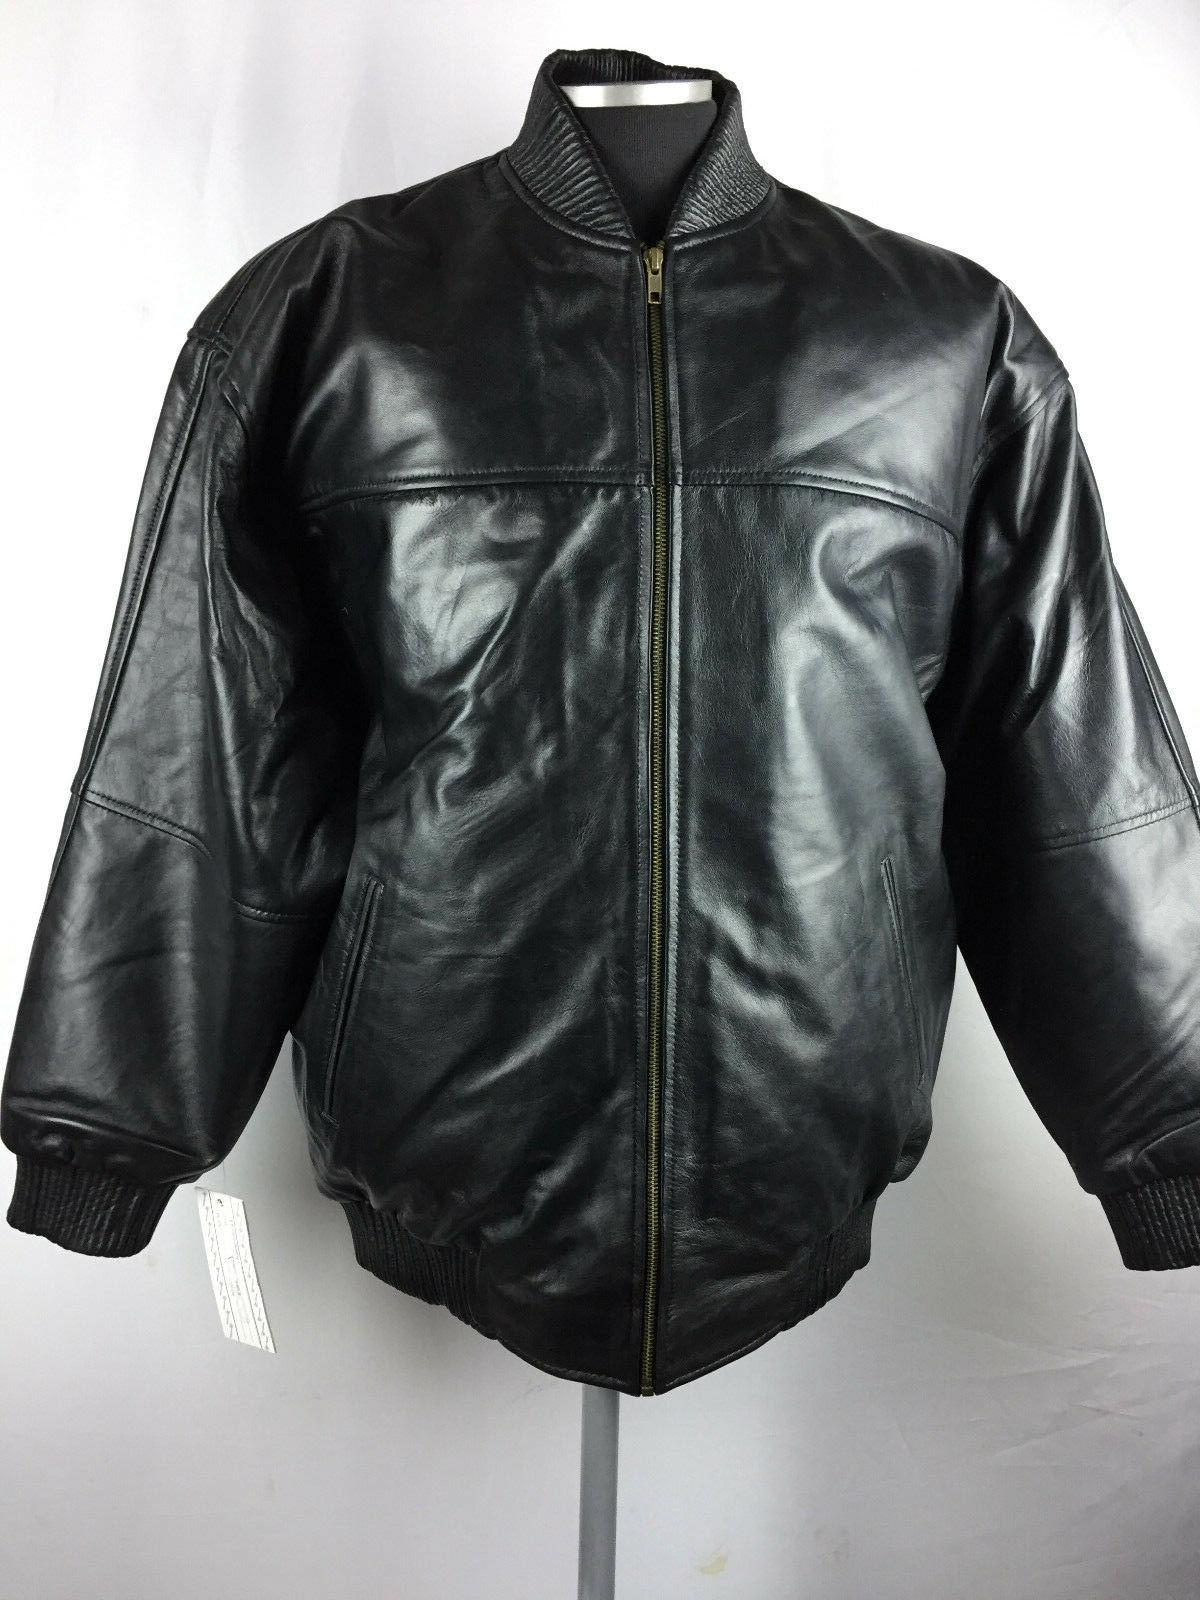 MENS GENUINE LAMBSKIN LEATHER BASEBALL JACKET BOMBER BLACK M